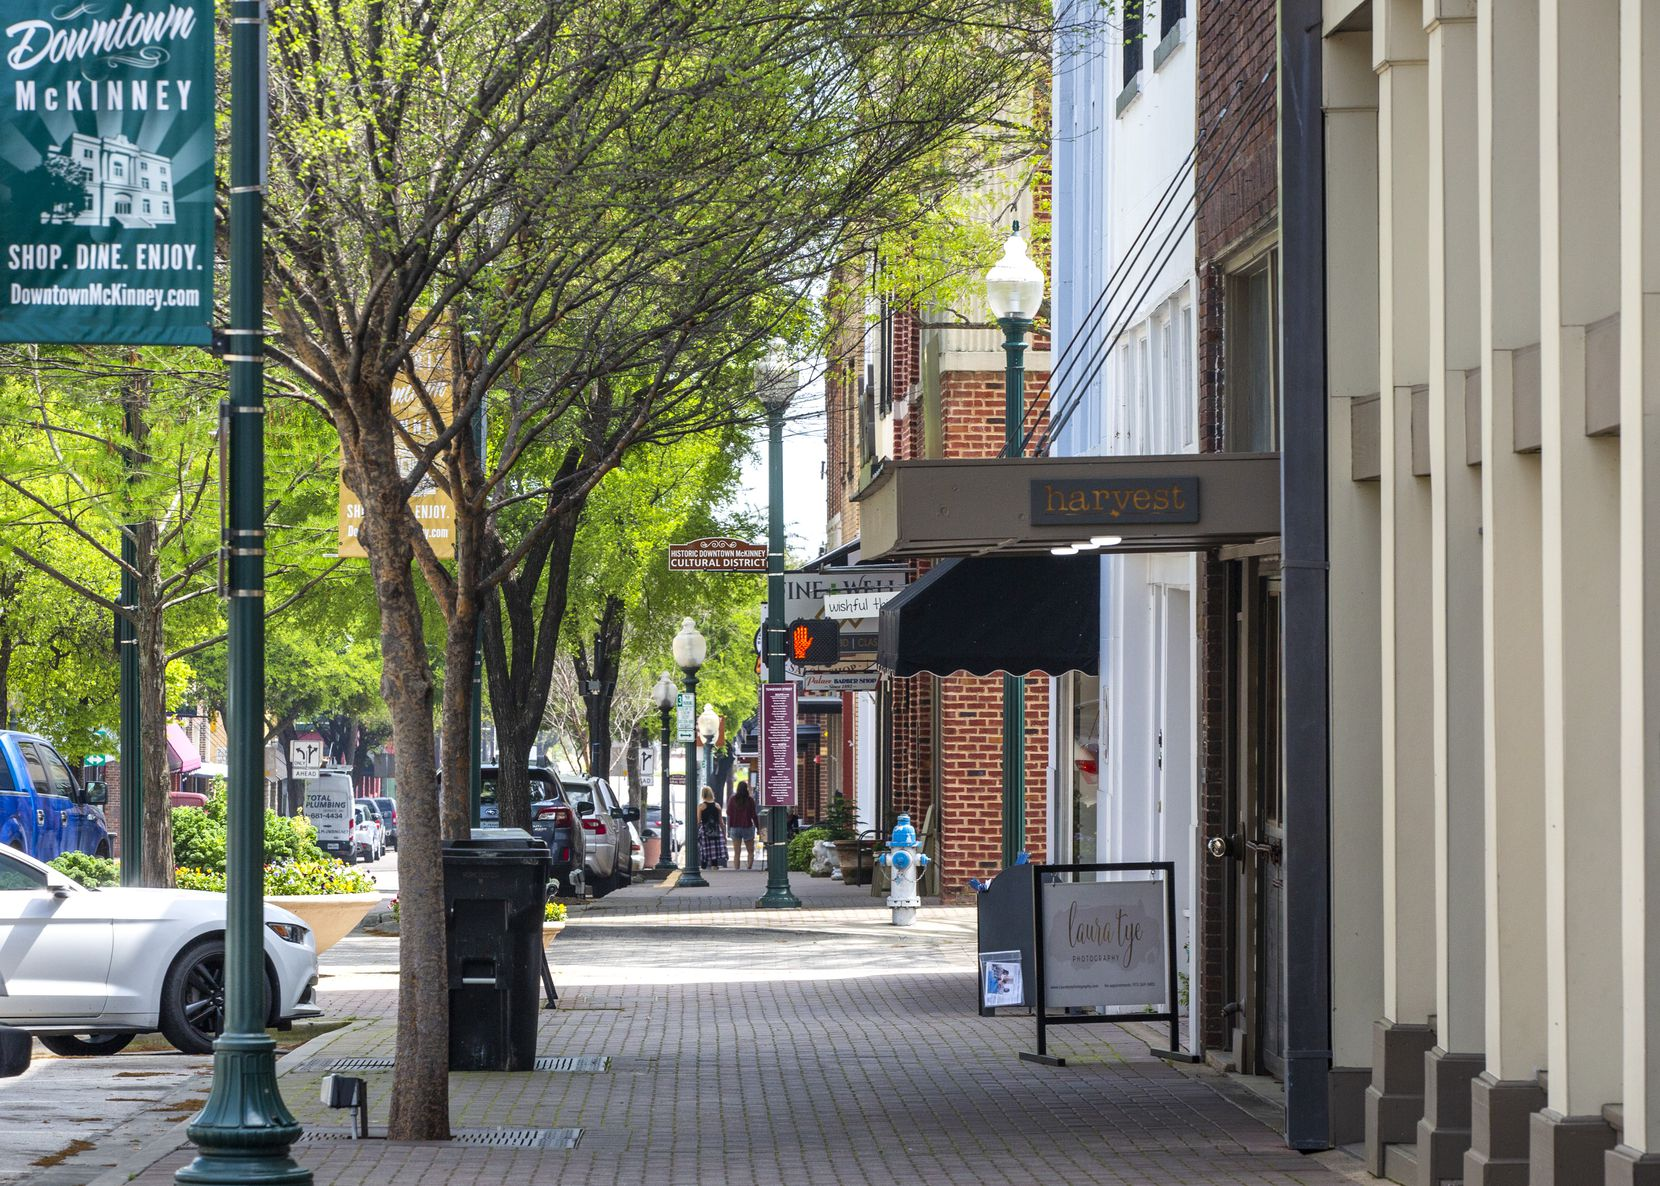 In downtown McKinney, what would typically be a bustling scene looked more akin to a ghost town on Thursday, March 26, 2020, as customers had become scarce amid the coronavirus pandemic.